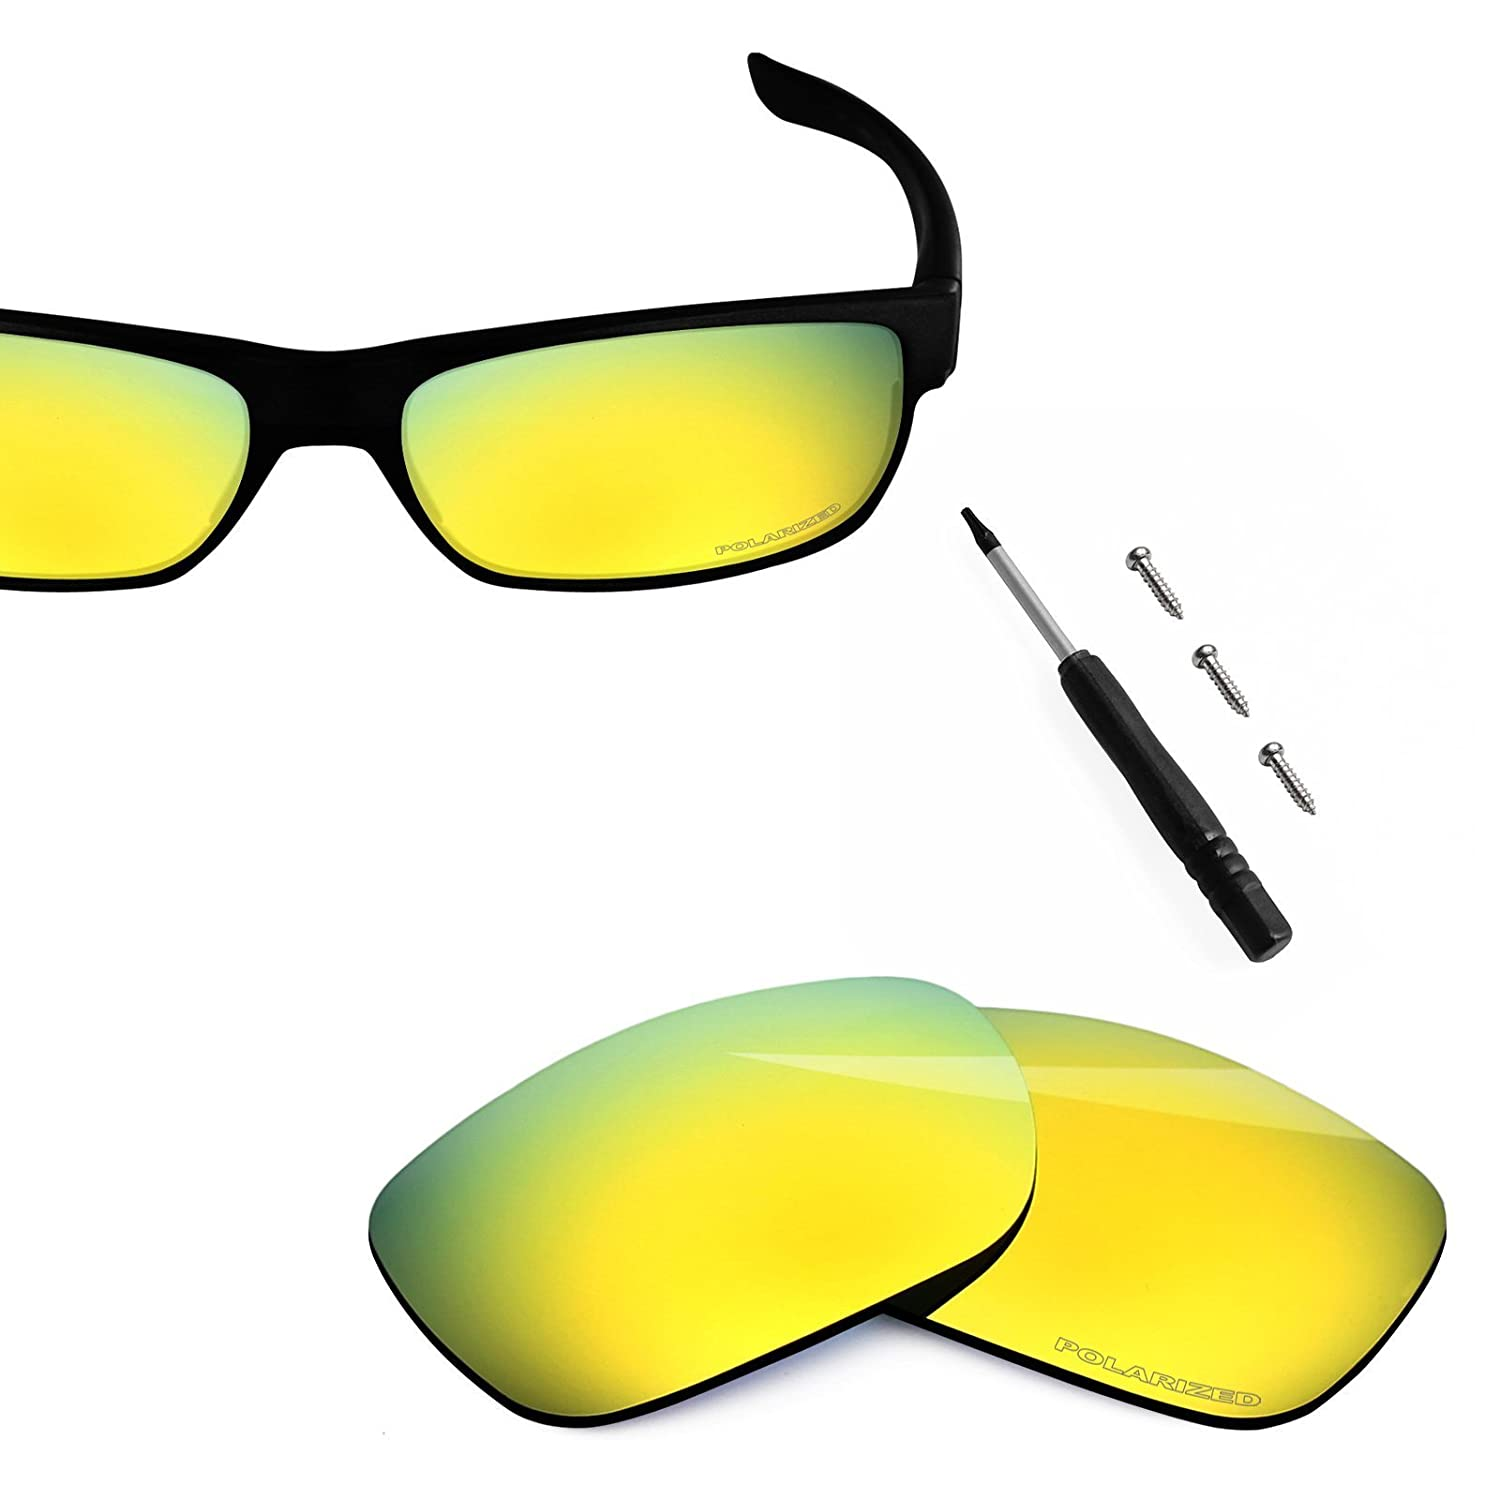 6392a798f7 Amazon.com  BlazerBuck Anti-salt Polarized Replacement Lenses for Oakley  TwoFace - 24K Gold  Clothing